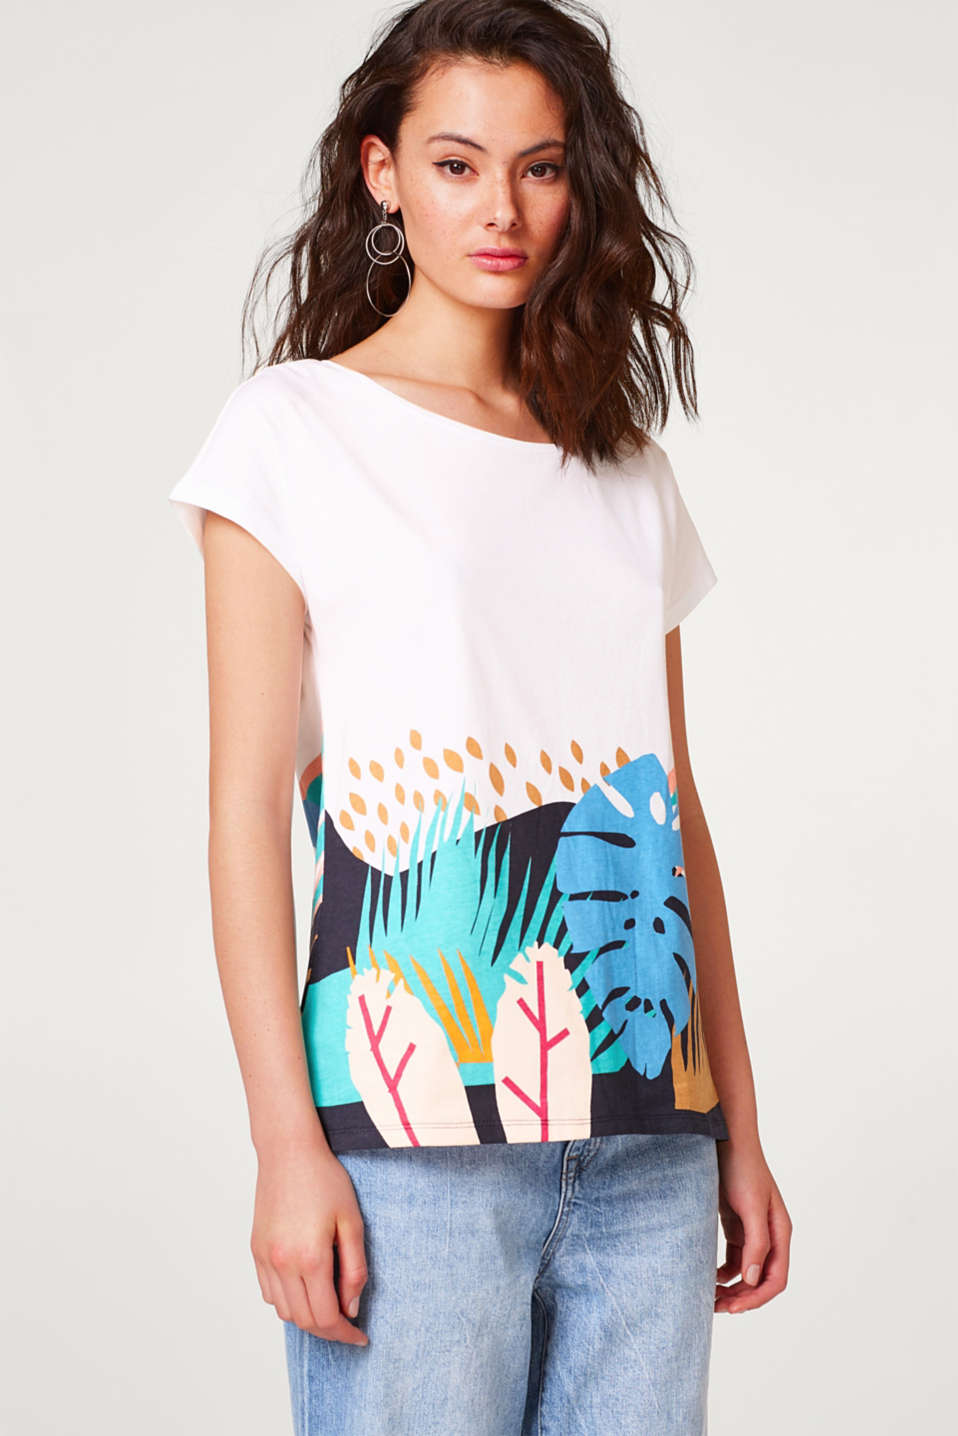 Esprit - T-shirt with a colourful print, 100% cotton